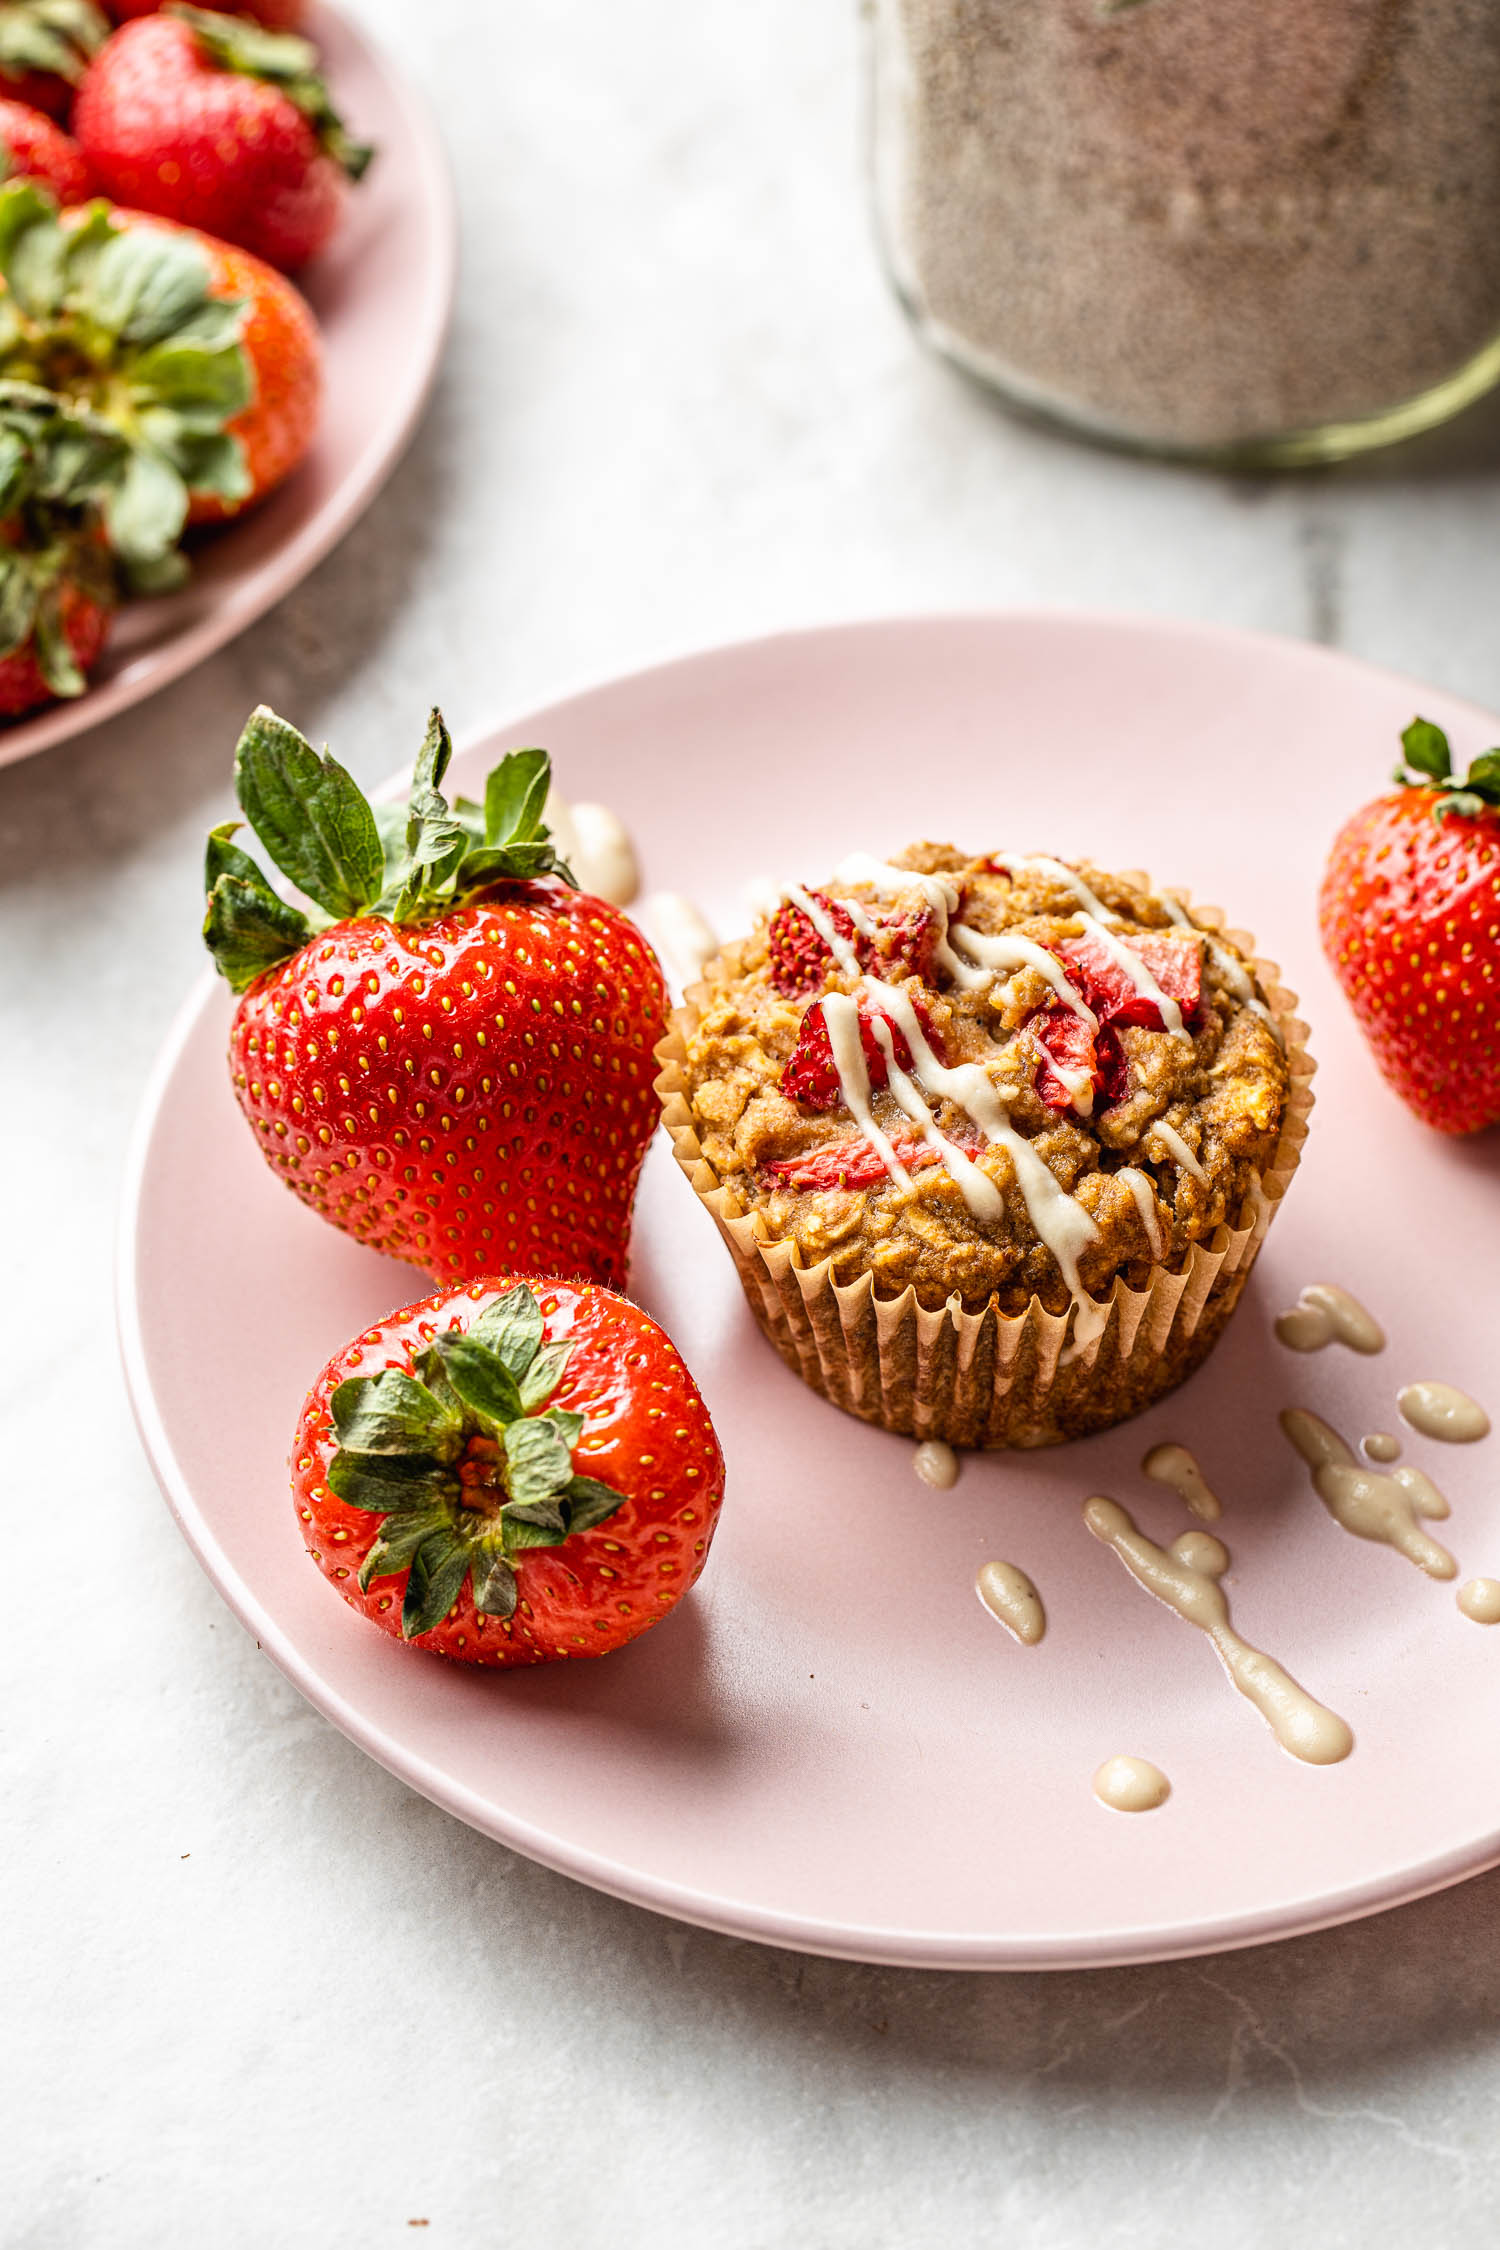 vegan gluten free strawberry muffin on a pink plate with a few whole strawberries with a drizzle of dairy free cream cheese glaze